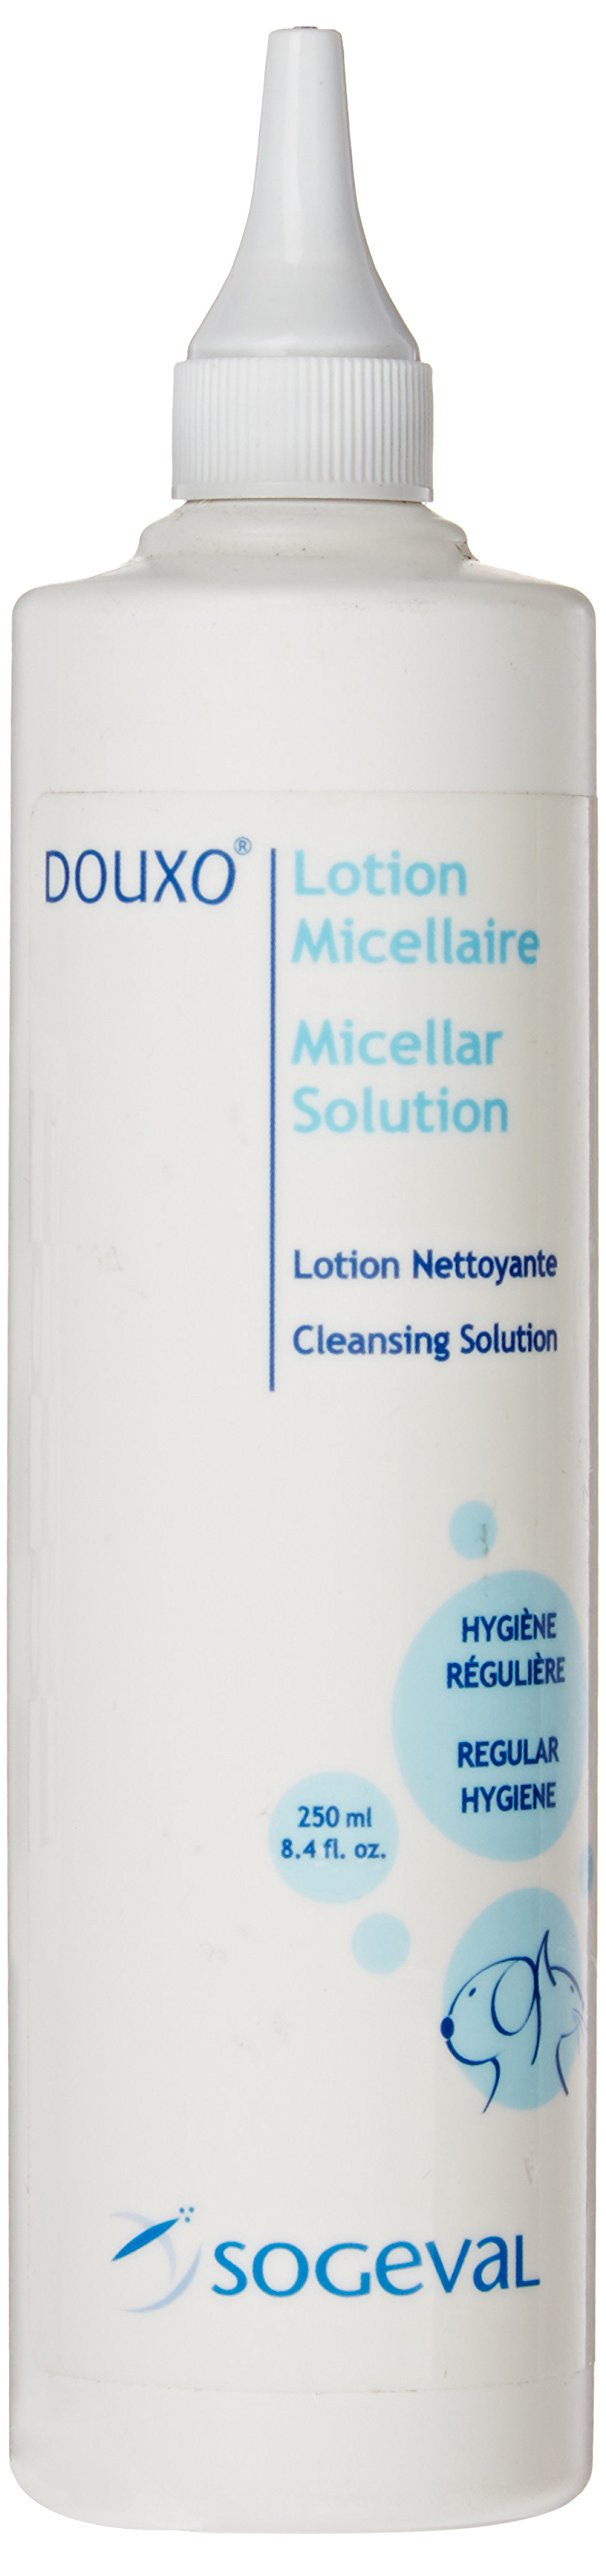 Sogeval Douxo Micellar Ear Cleansing Solution for Pets, 8.4-Ounce